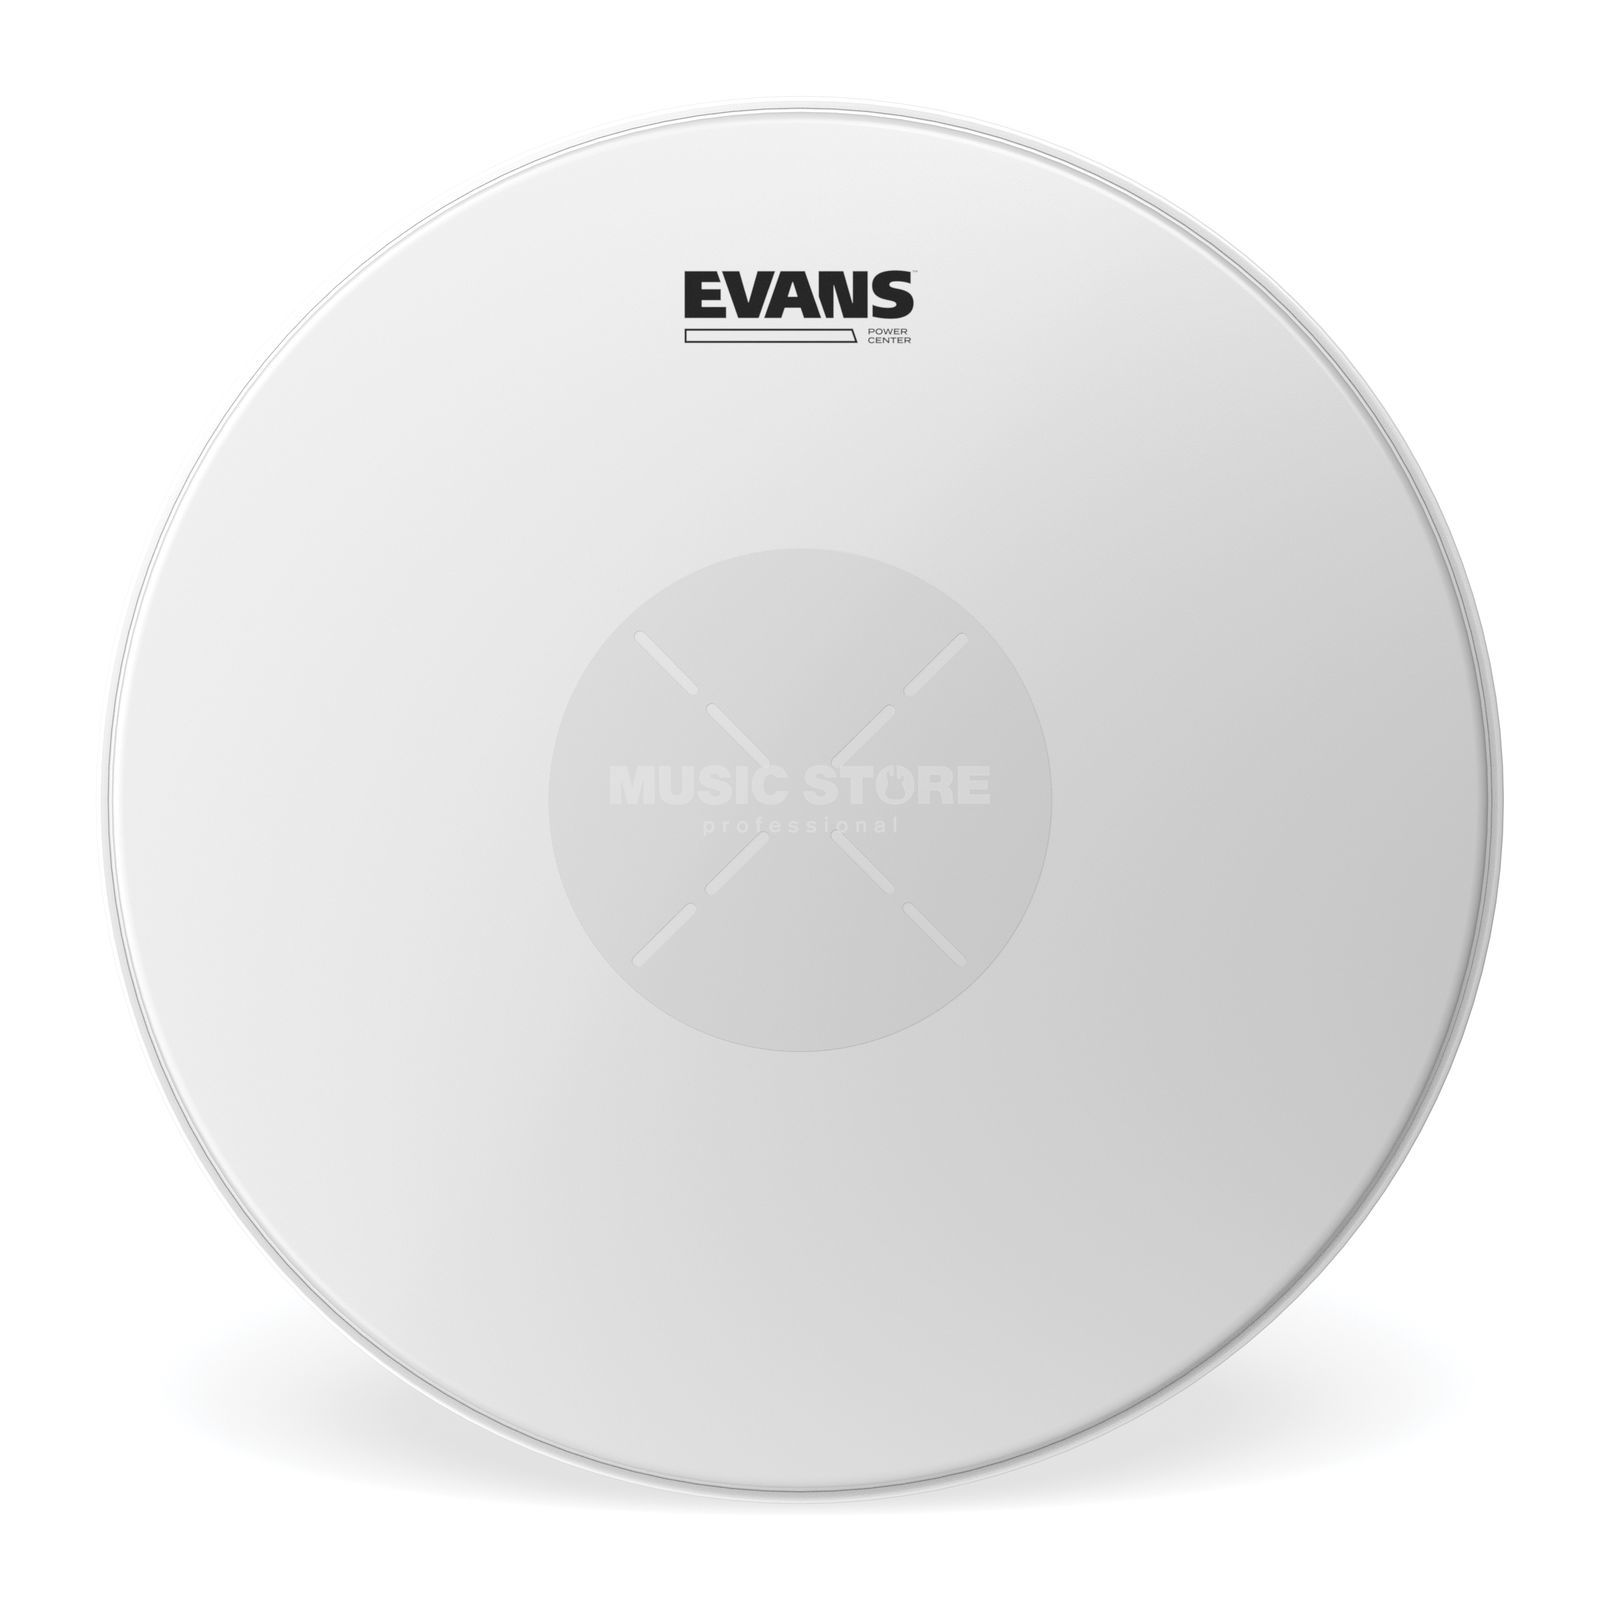 "Evans Power Center 14"", B14G1D, Snare Batter Produktbild"